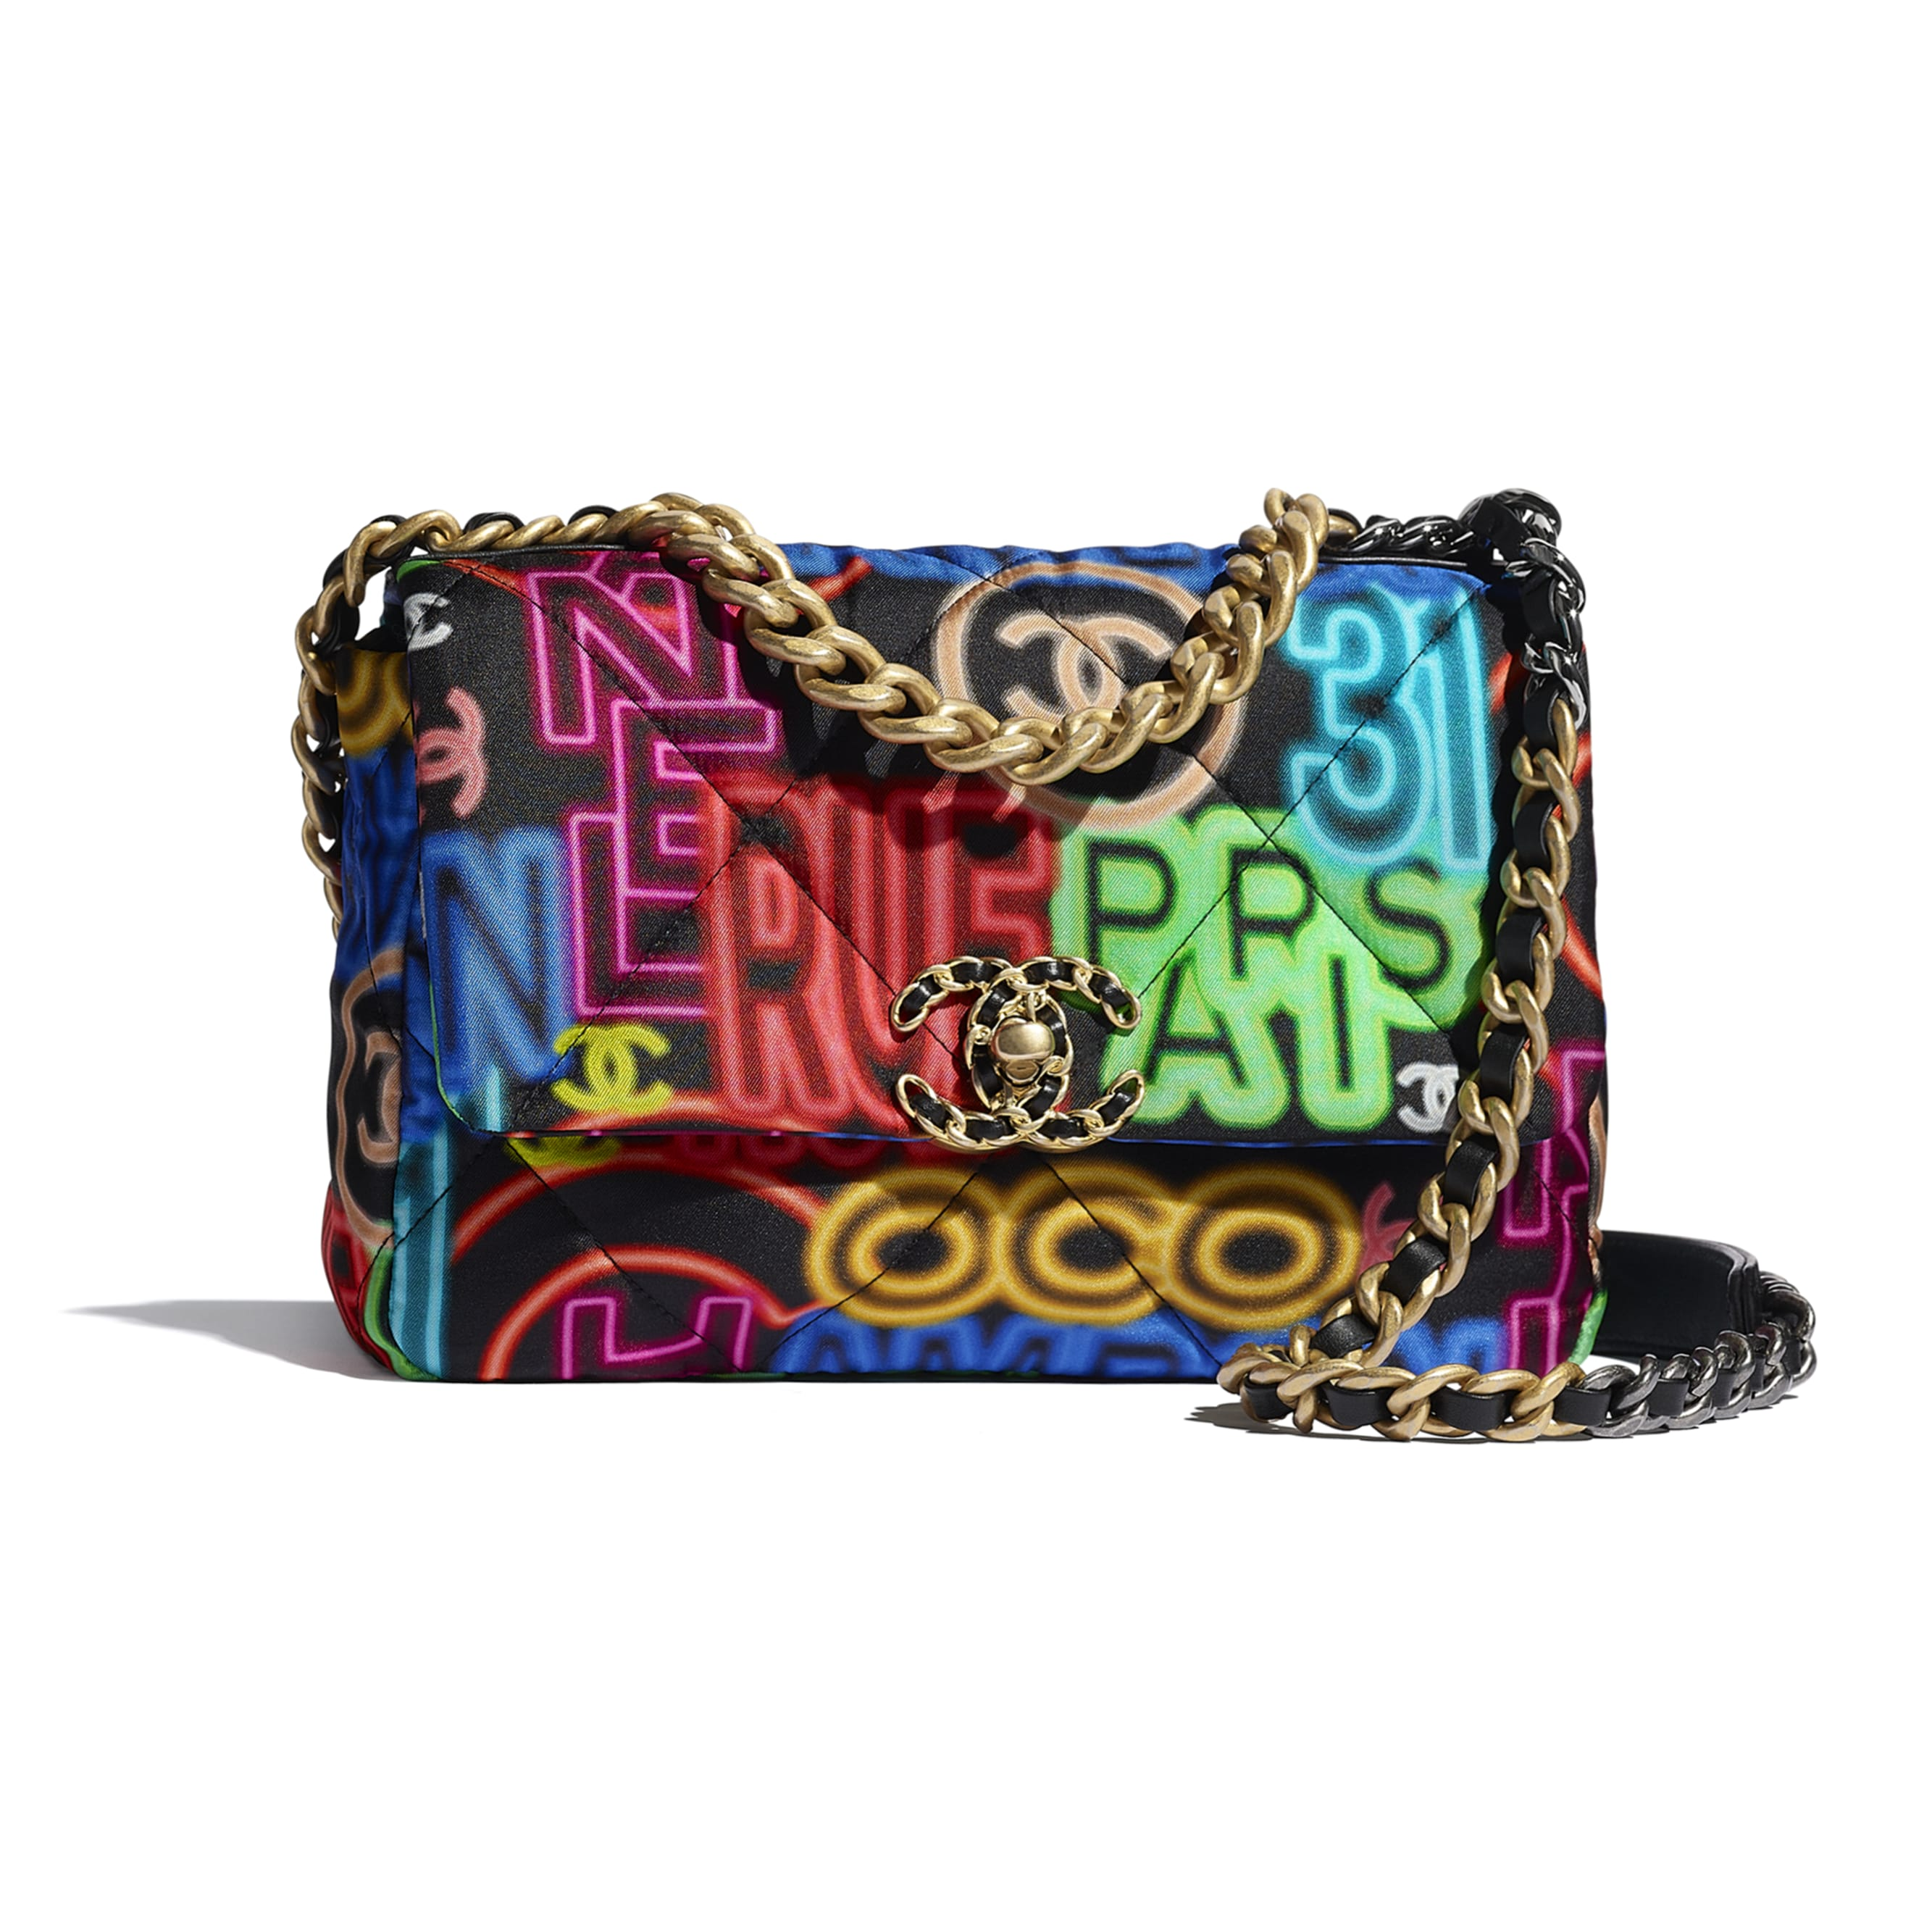 CHANEL 19 Handbag - Black & Multicolour - Printed Fabric, Gold-Tone, Silver-Tone & Ruthenium-Finish Metal - CHANEL - Default view - see standard sized version